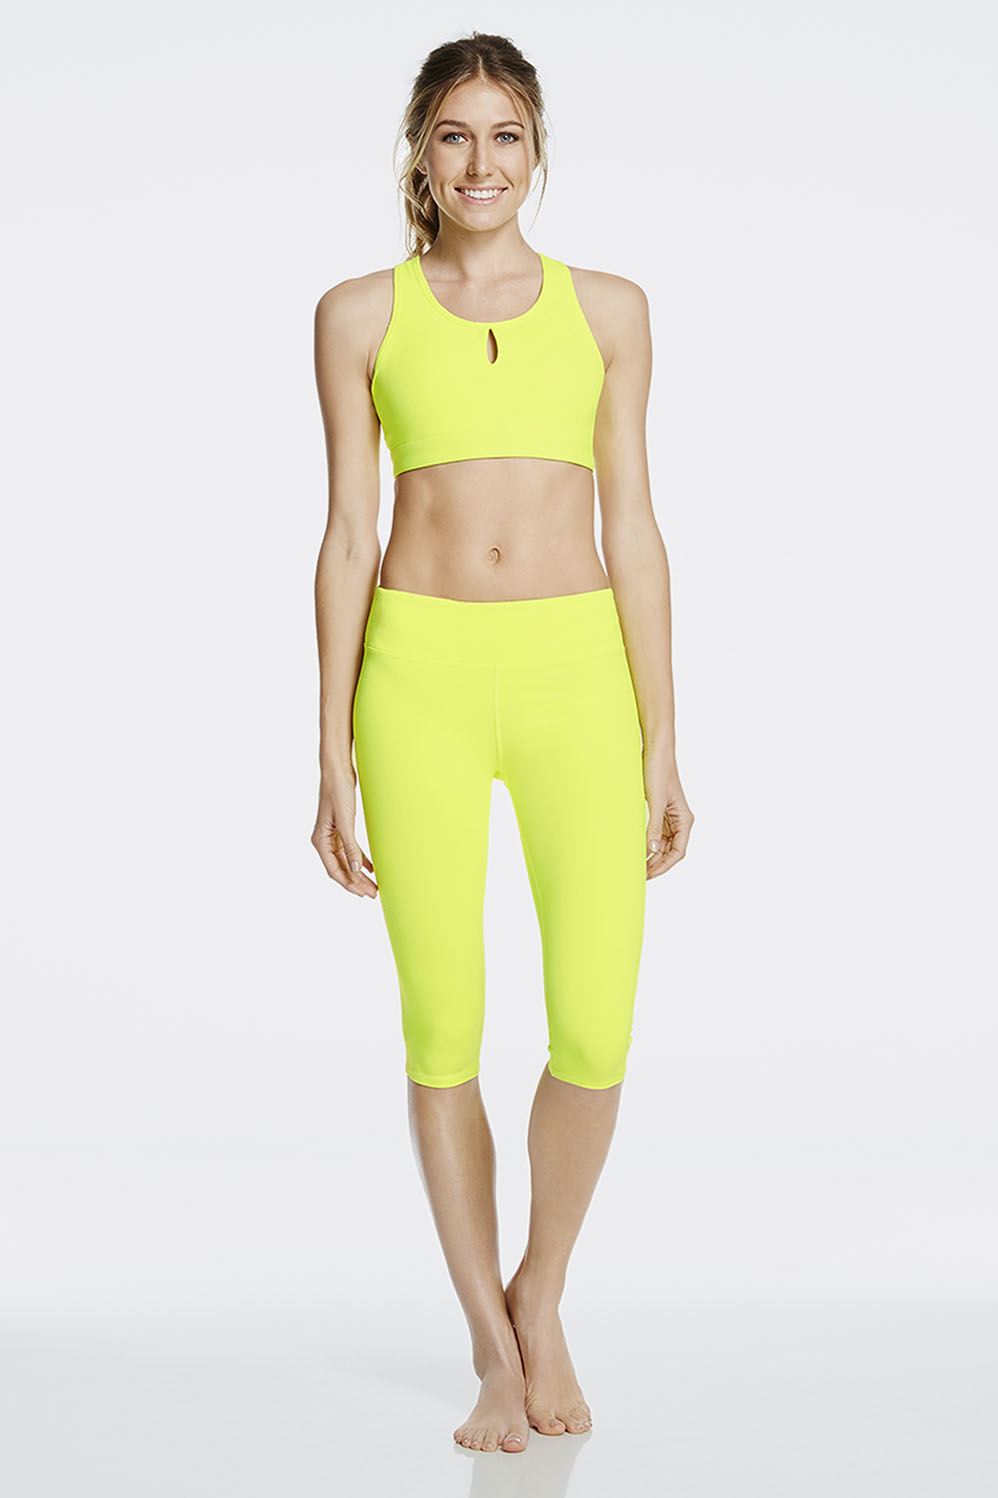 Freesia Outfit - Get great athletic wear at Fabletics